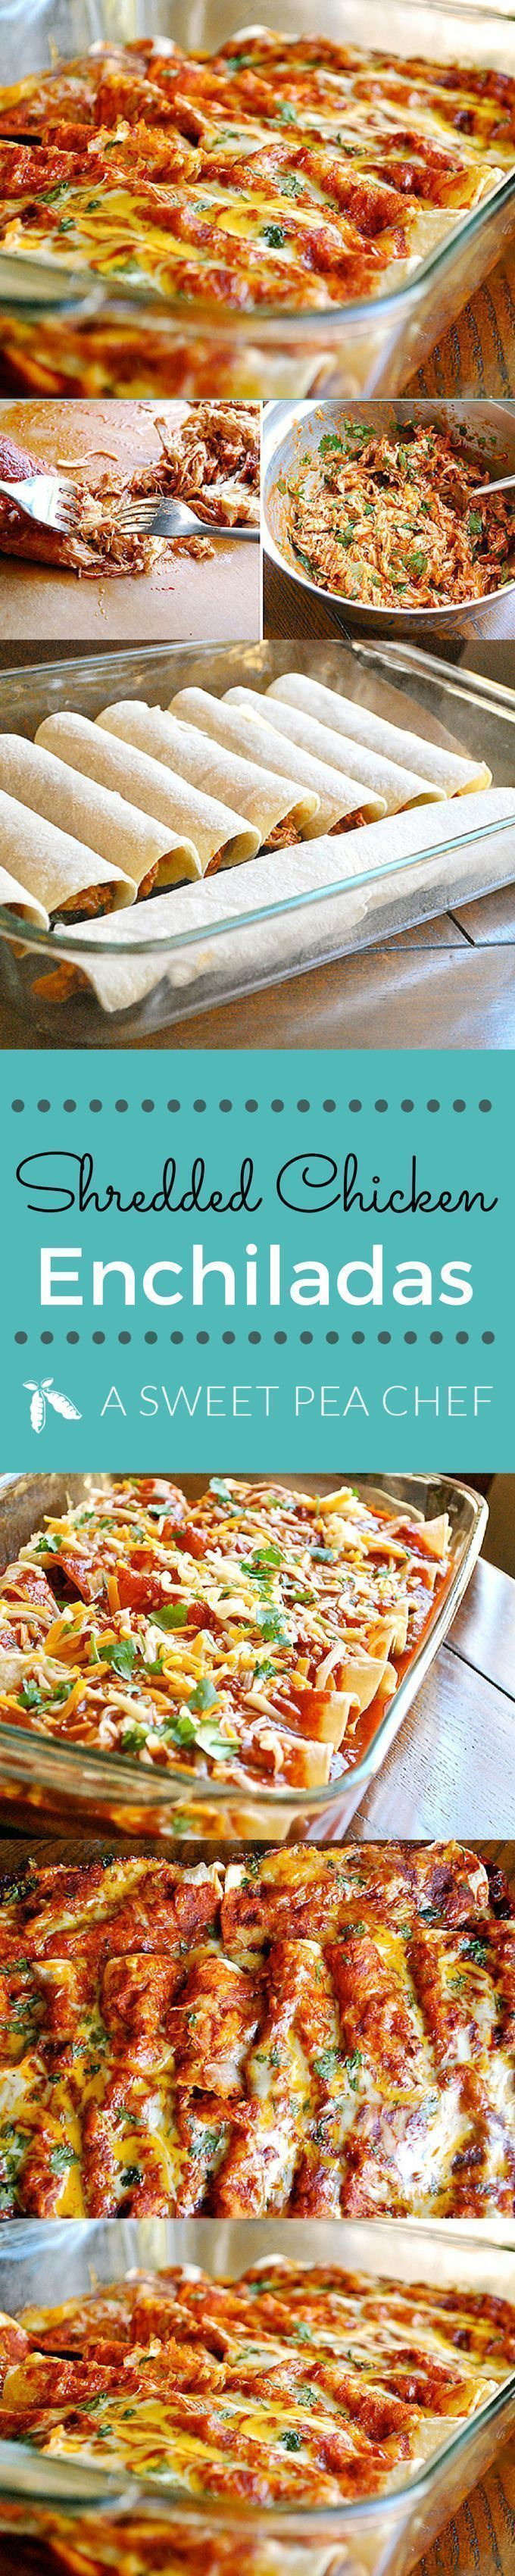 A quick, easy and delicious homemade Shredded Chicken Enchiladas recipe you can make for dinner tonight!